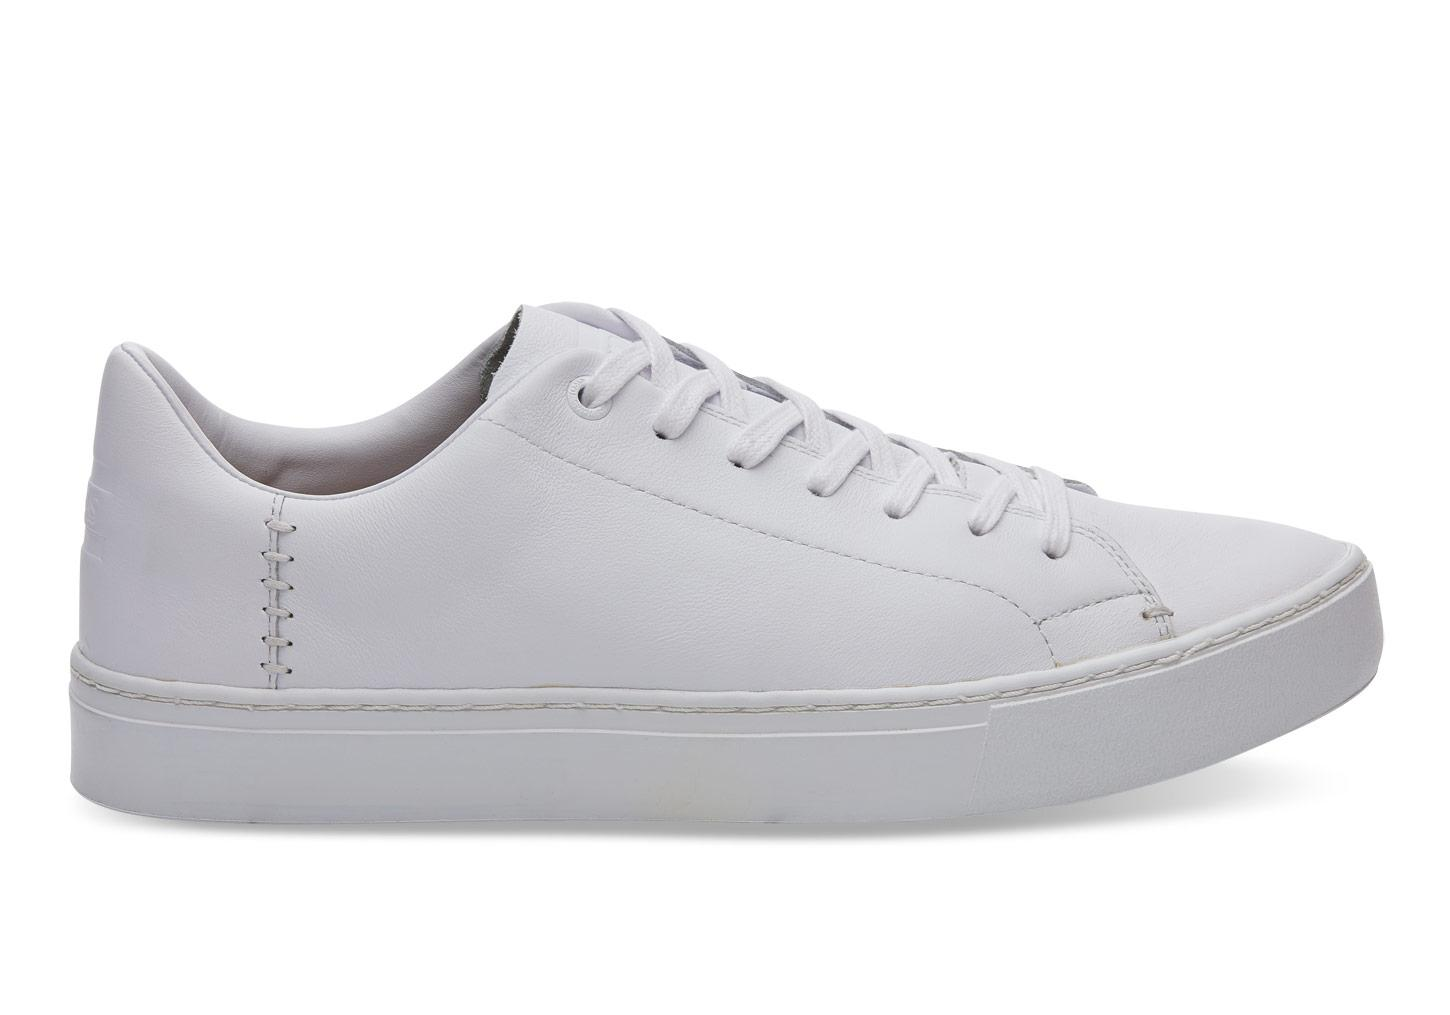 087bb36381 TOMS White Leather Men's Lenox Sneakers in White for Men - Lyst